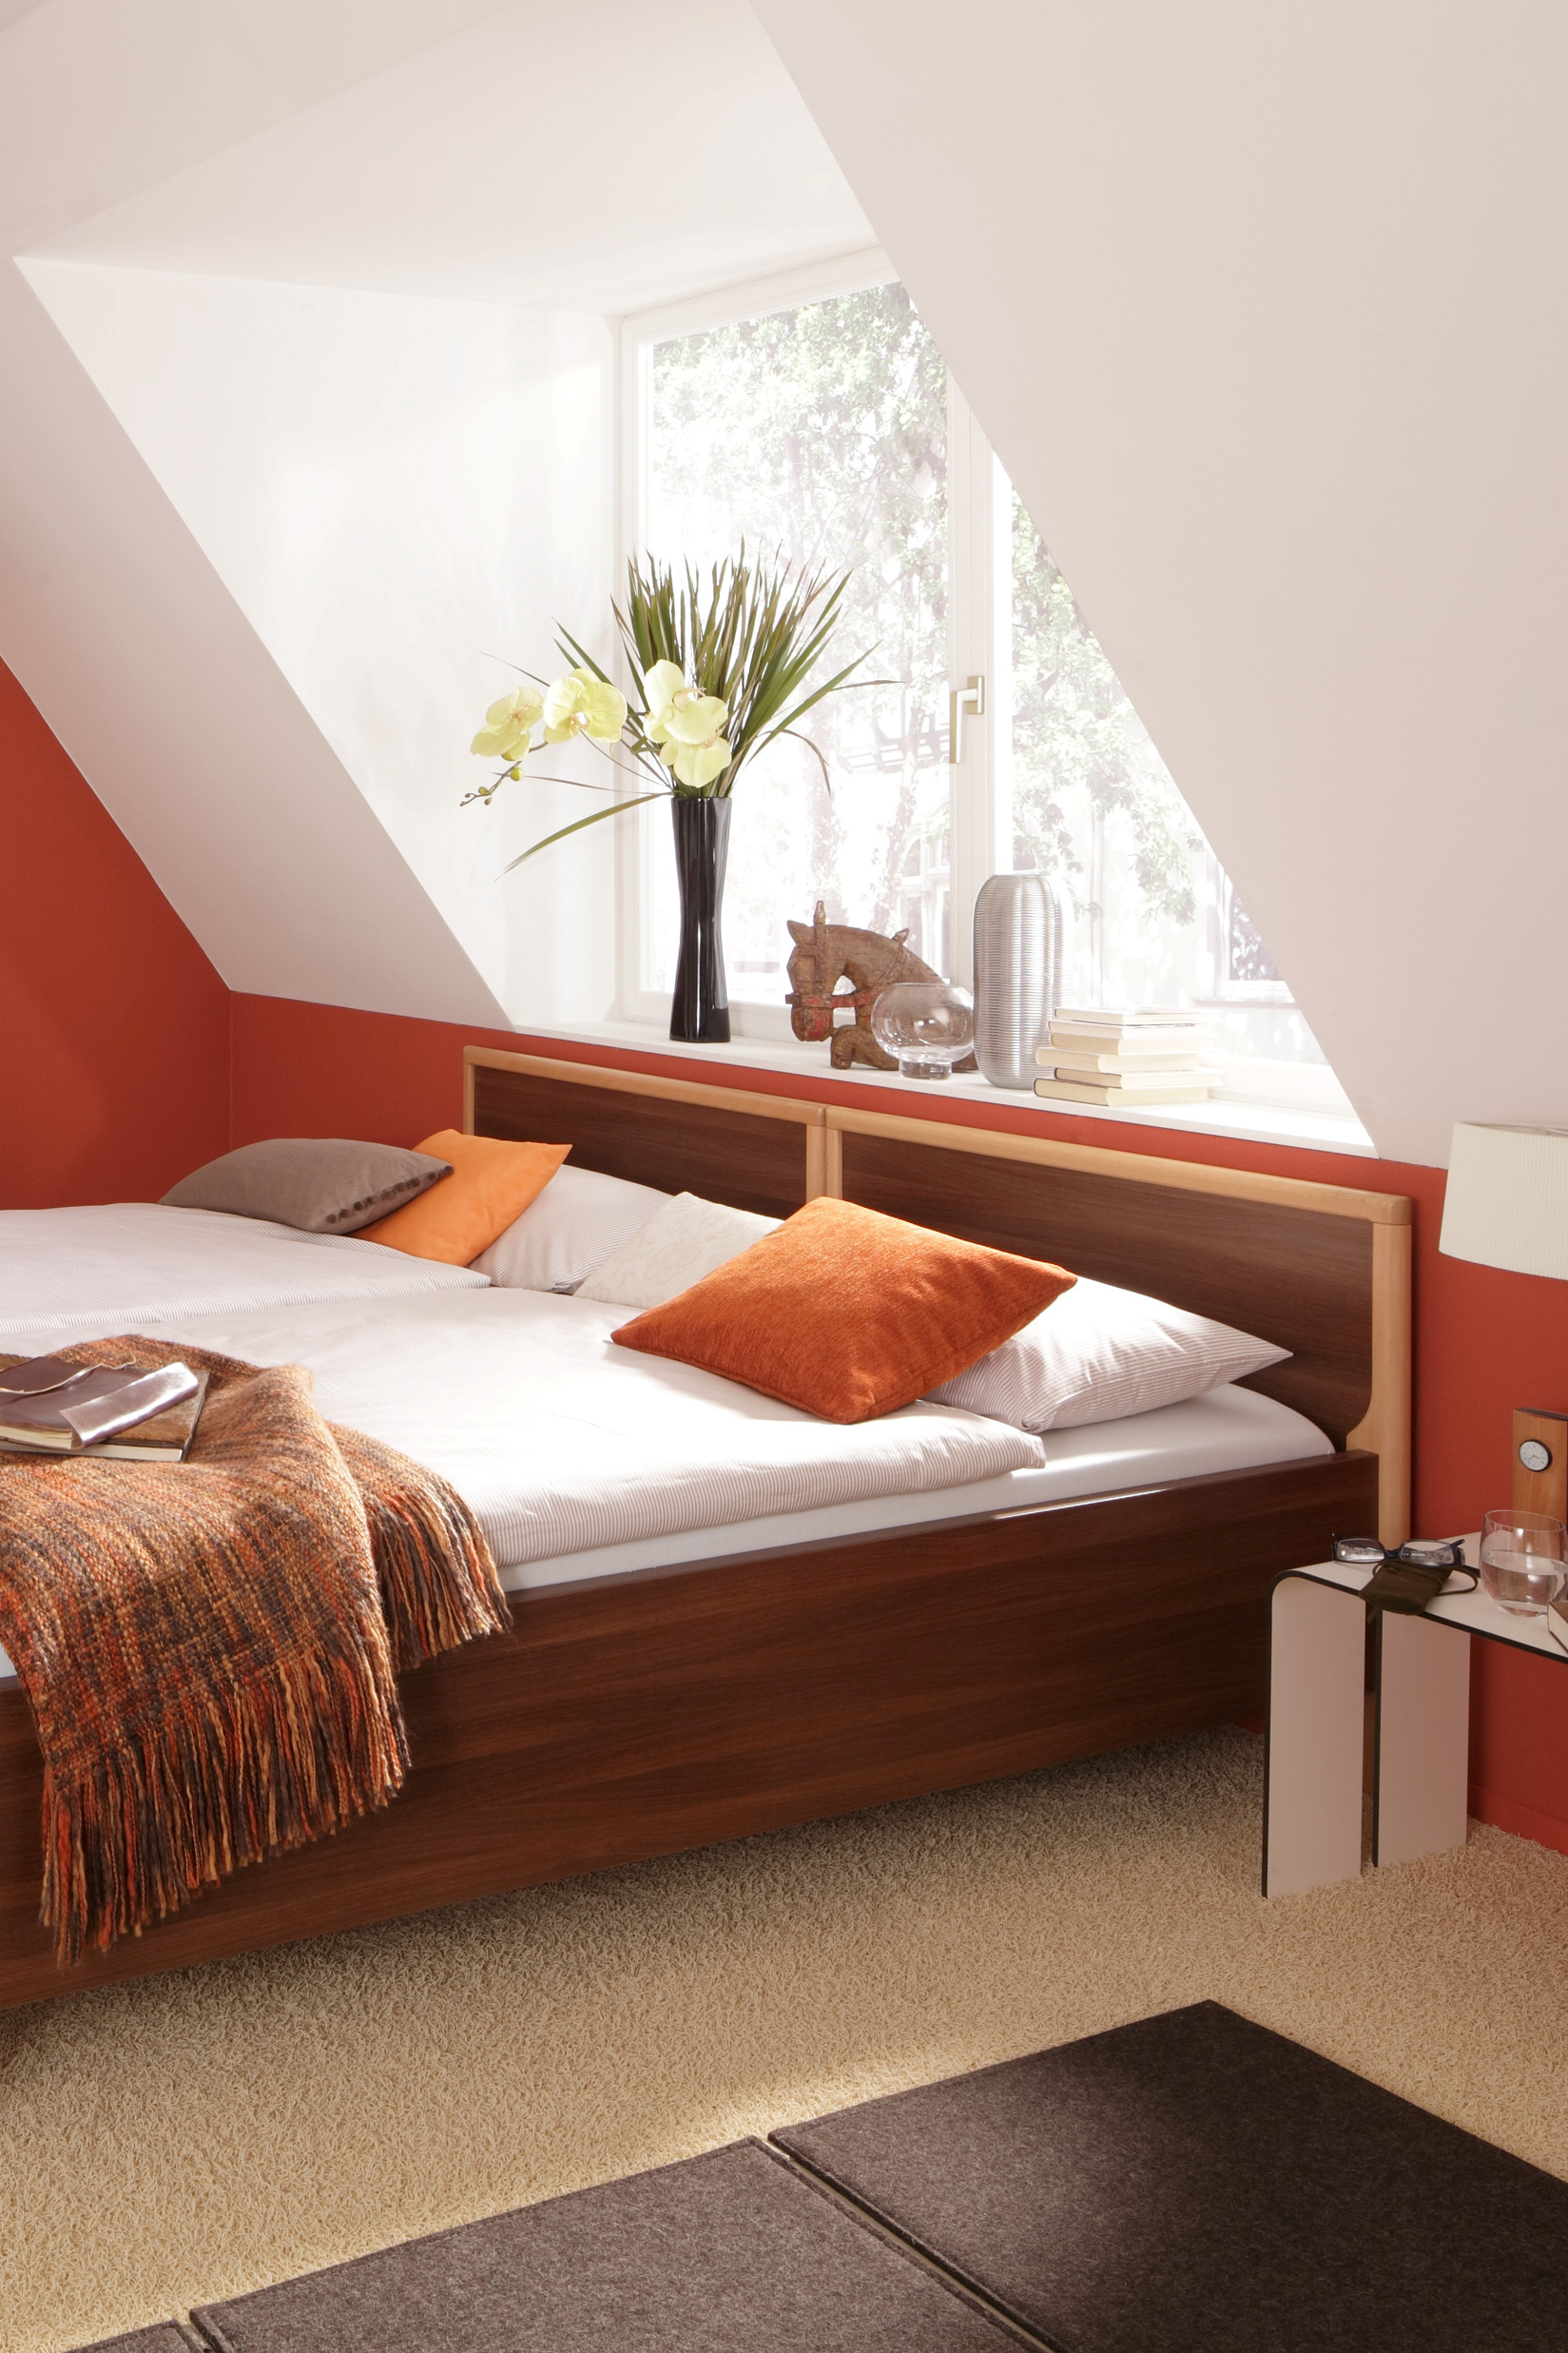 Relax bed frame in a double bed